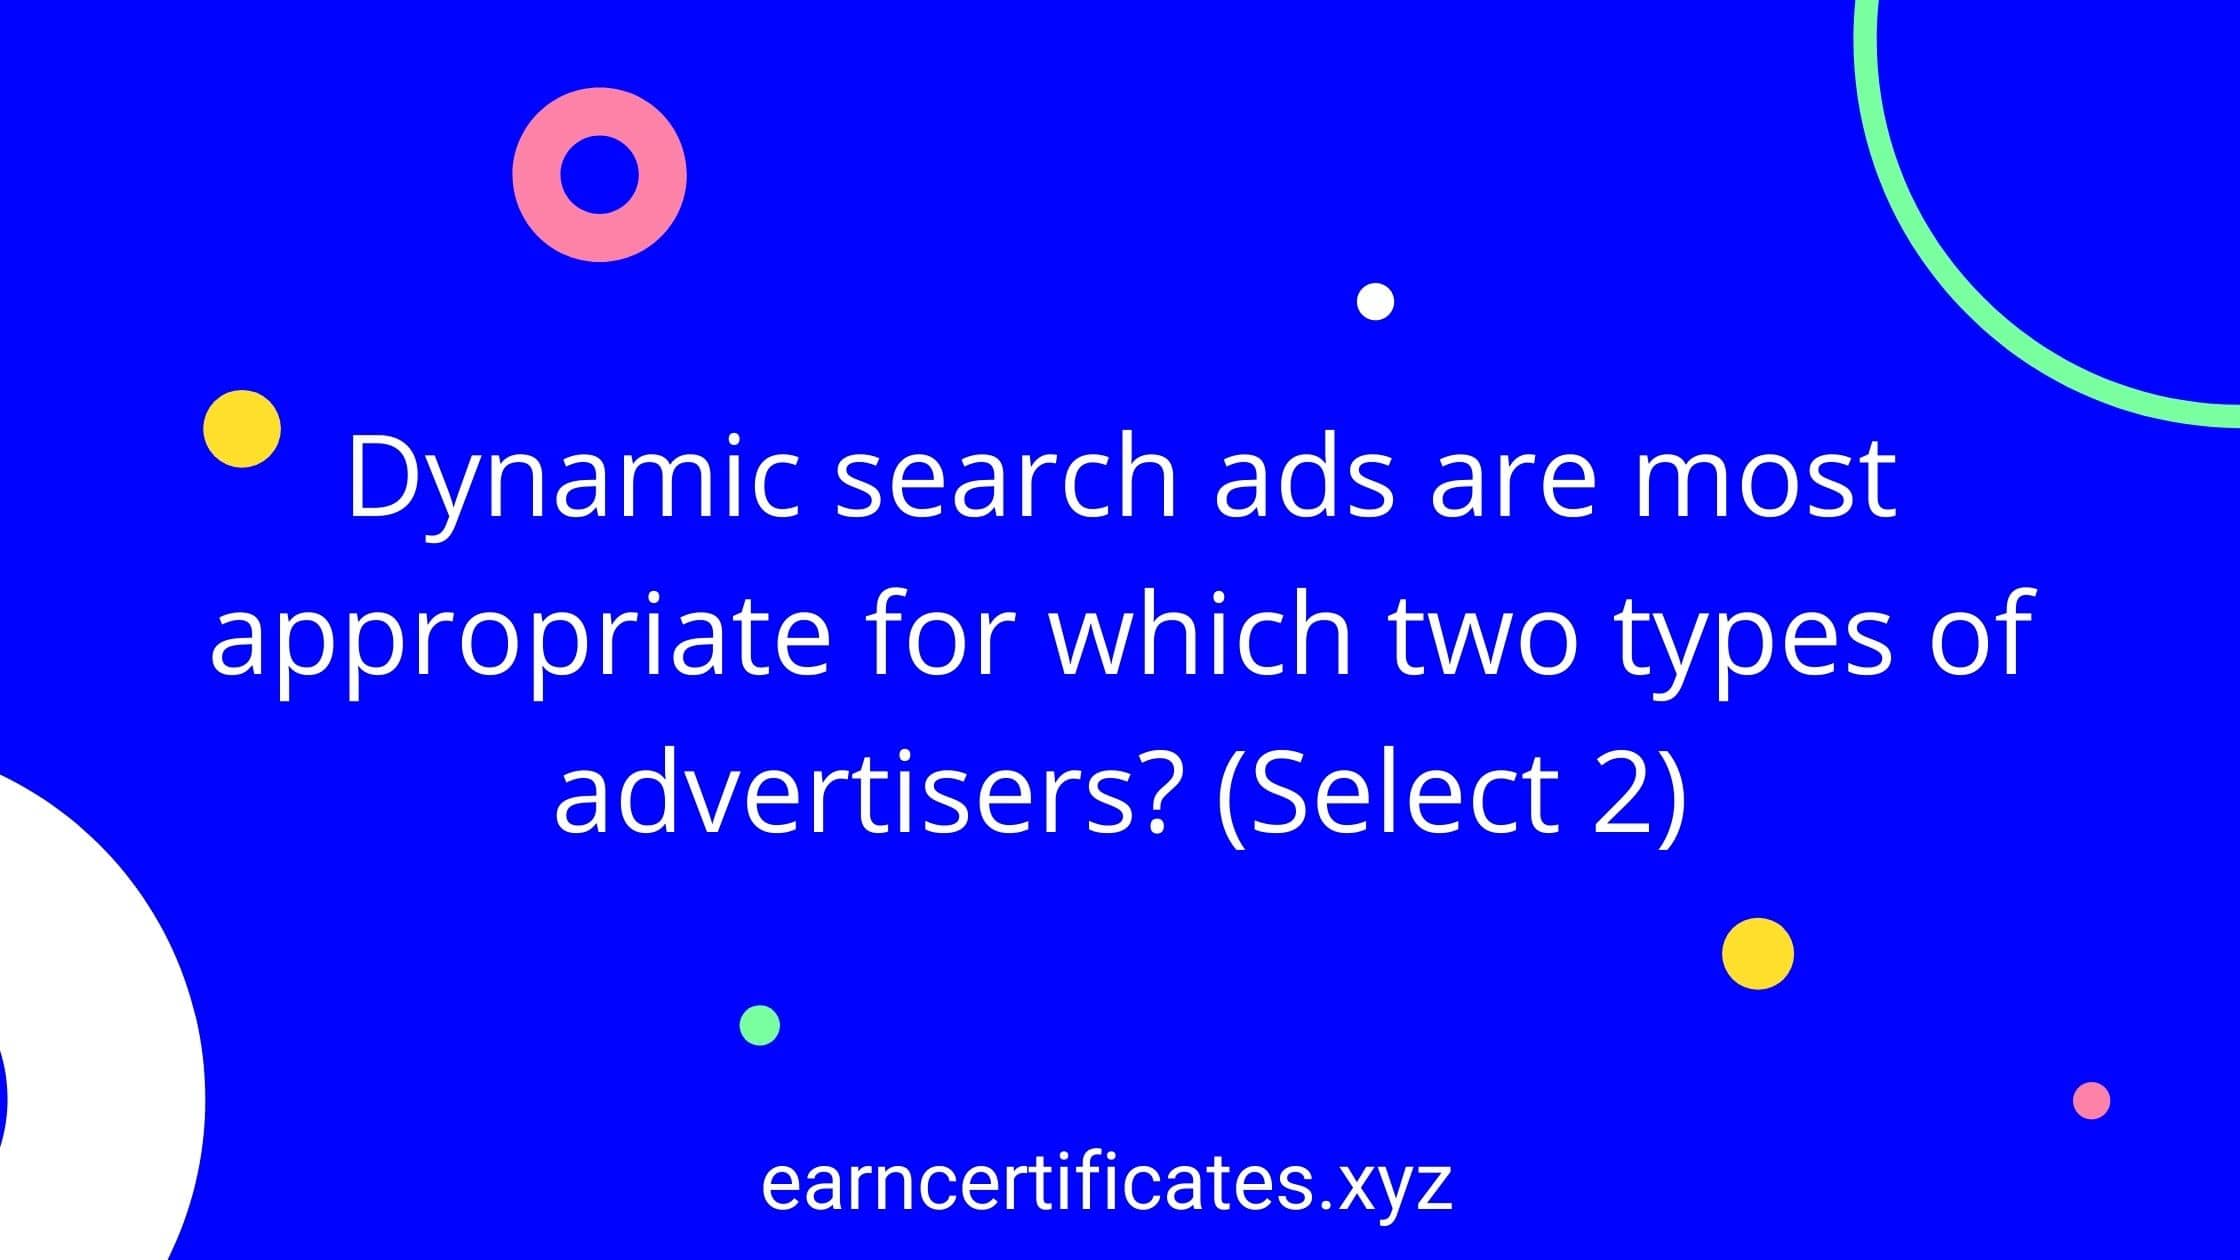 Dynamic search ads are most appropriate for which two types of advertisers? (Select 2)